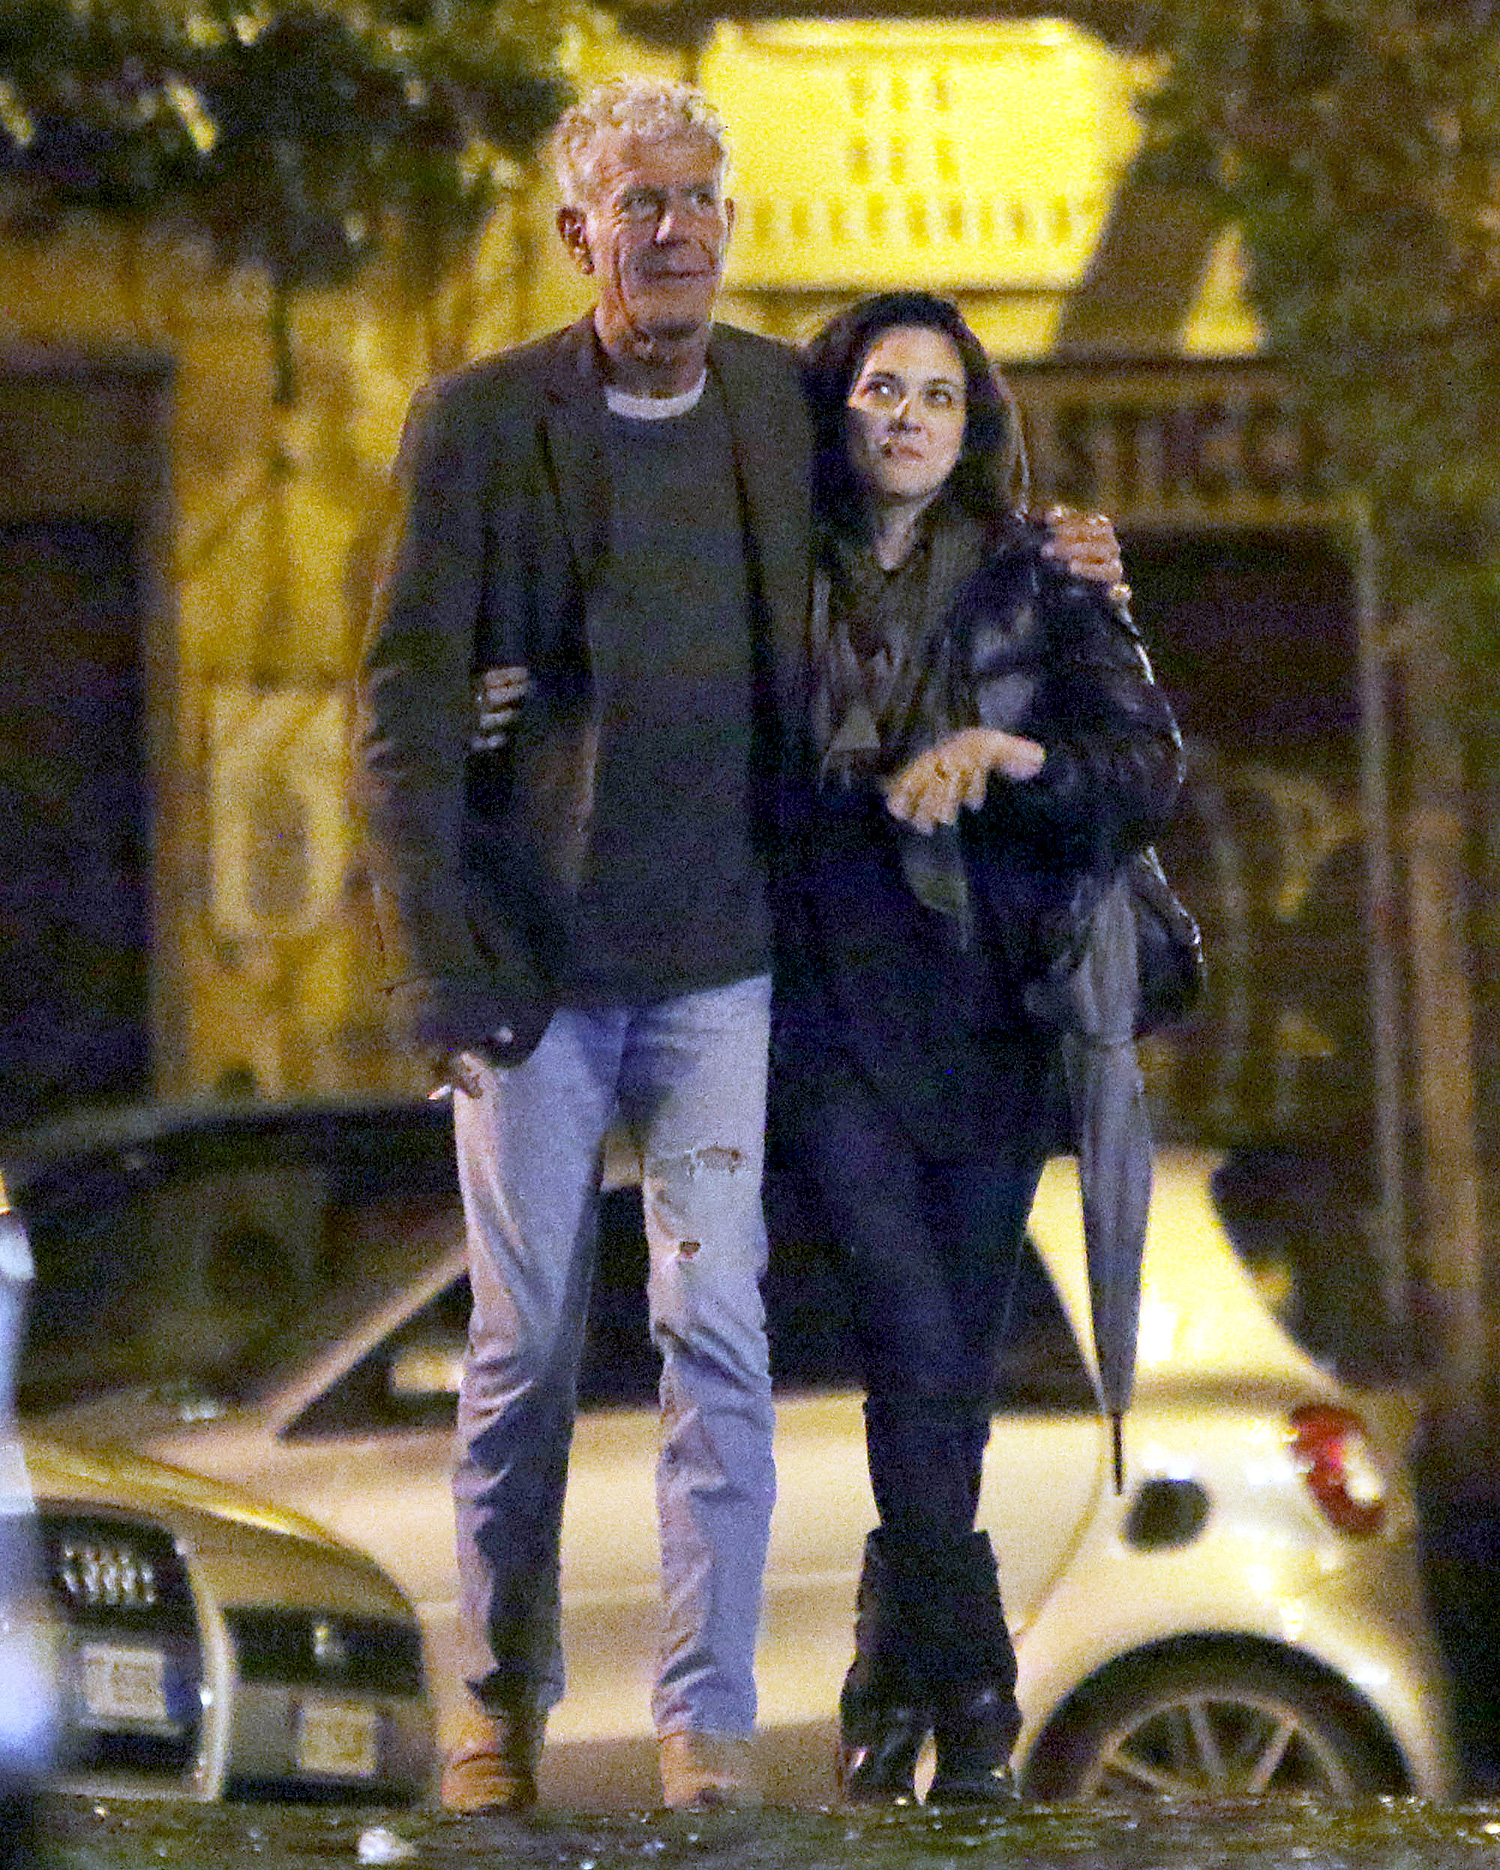 EXCLUSIVE: Chef Anthony Bourdain and Asia Argento spotted kissing passionately in Rome